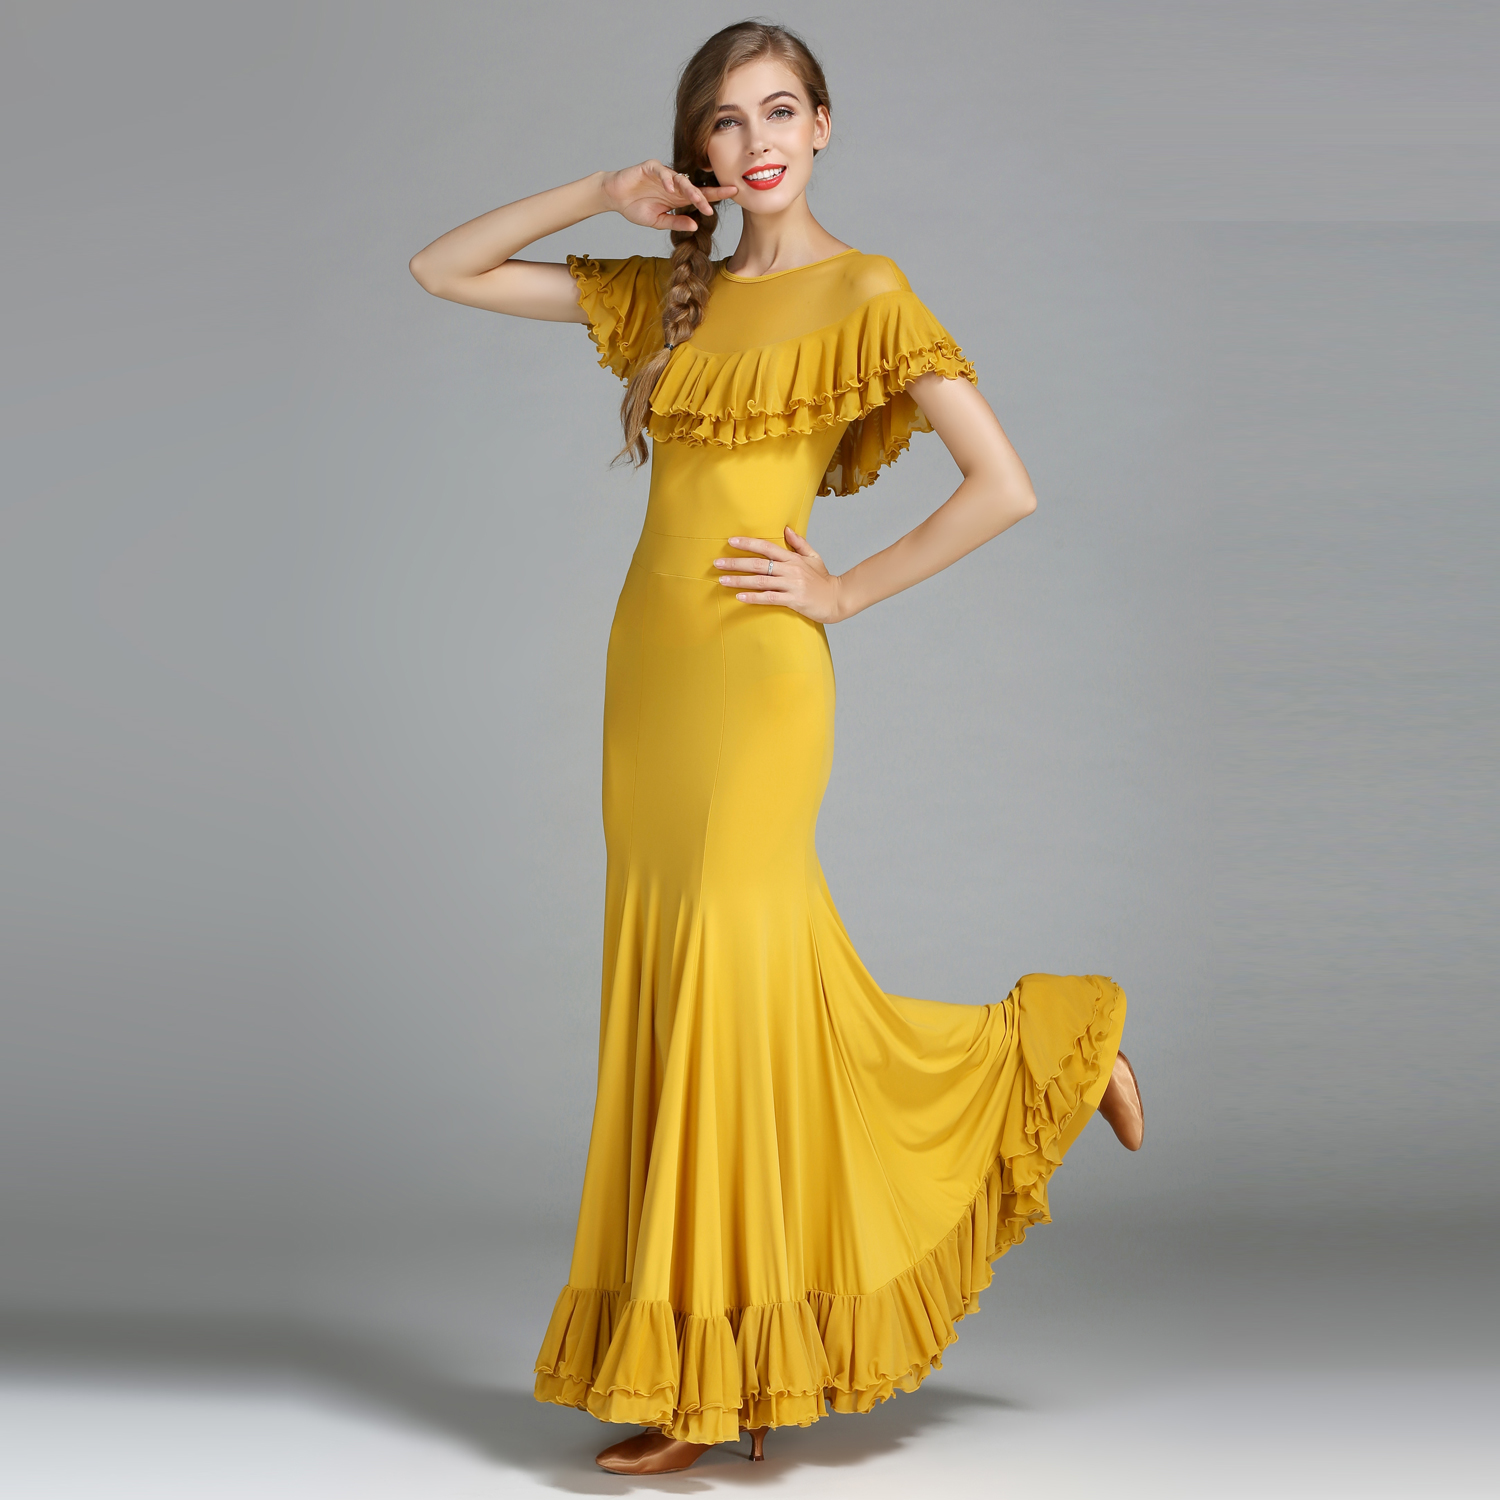 Modern Dance Costume Women Lady Adult Waltzing Tango Ruffled Dancing Dress Ballroom Costume Evening Party Dress 1846 and 1847 latin dance top and skirt suits dance dress ballroom costume leotard women lady adult evening party dress